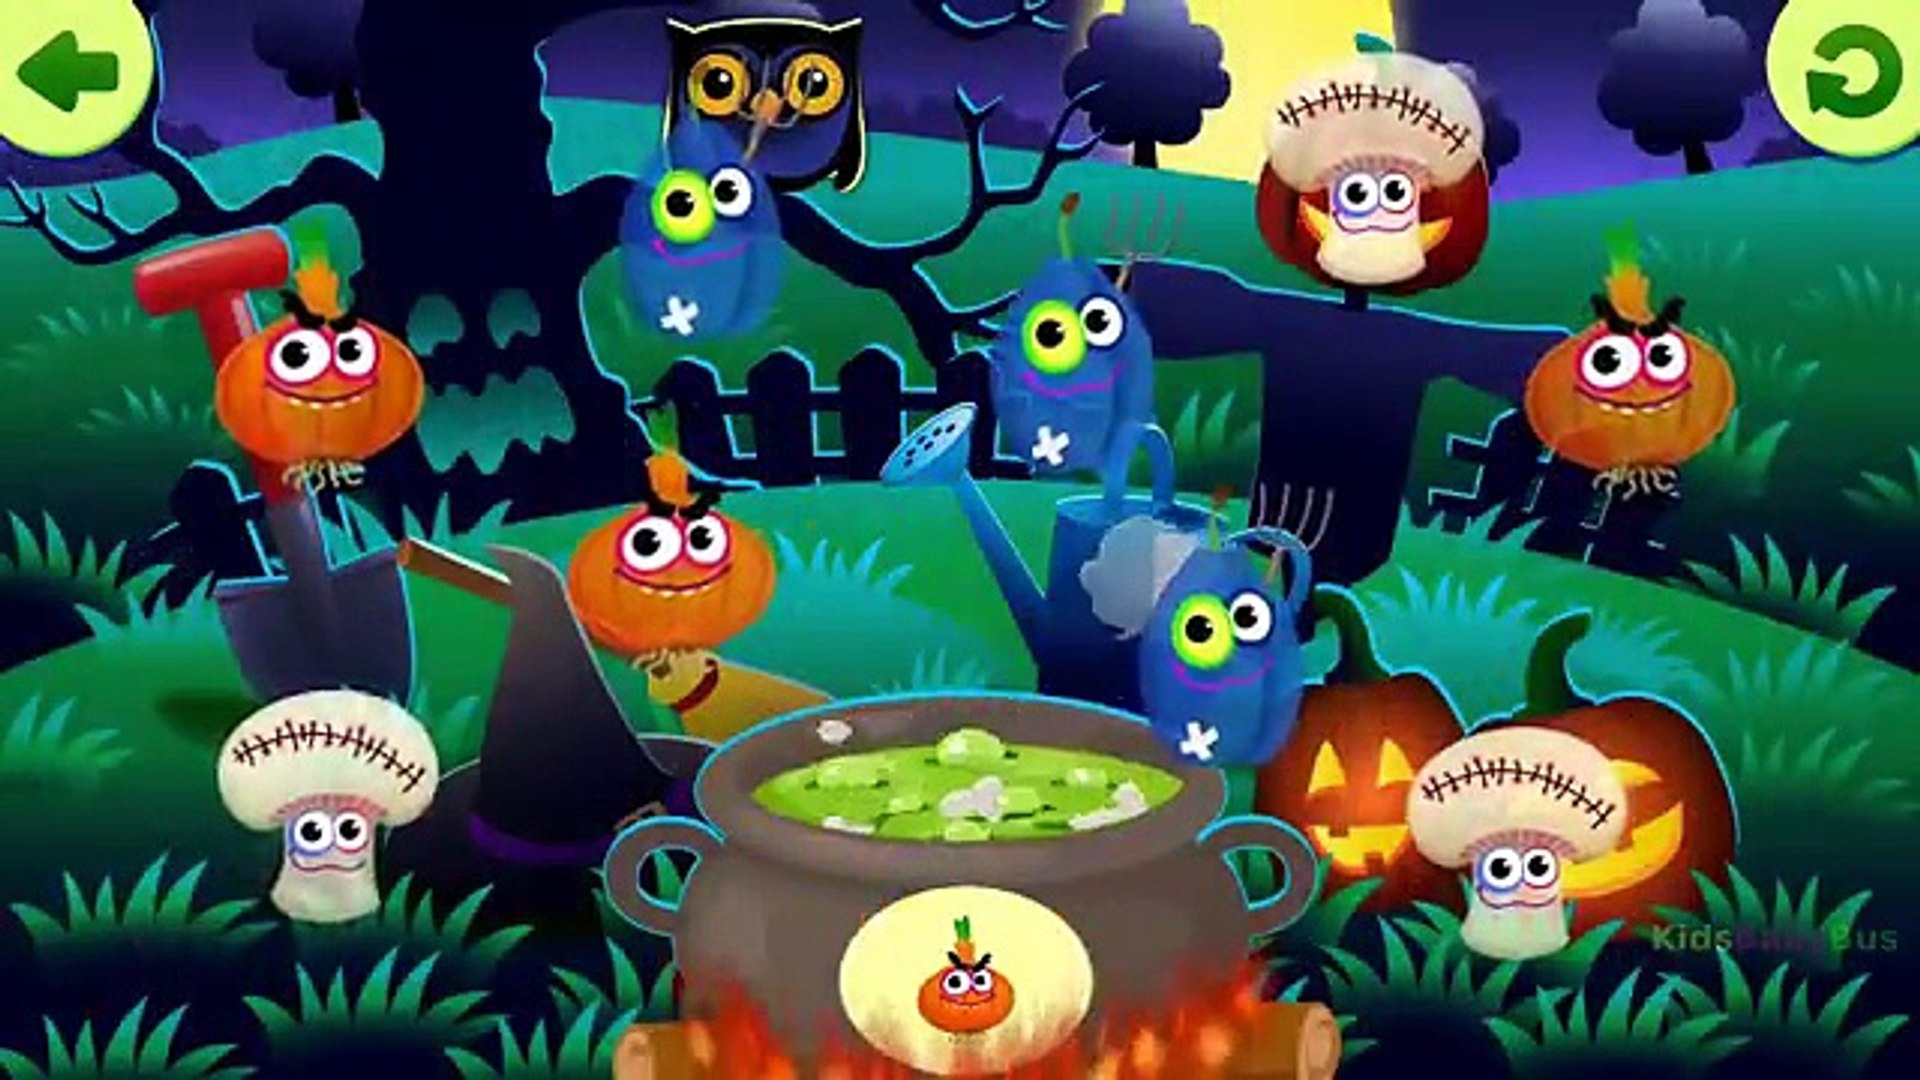 Kids Learn Autumn Foods and Fruits Names with Funny Foods: Halloween fun! - Kids Education